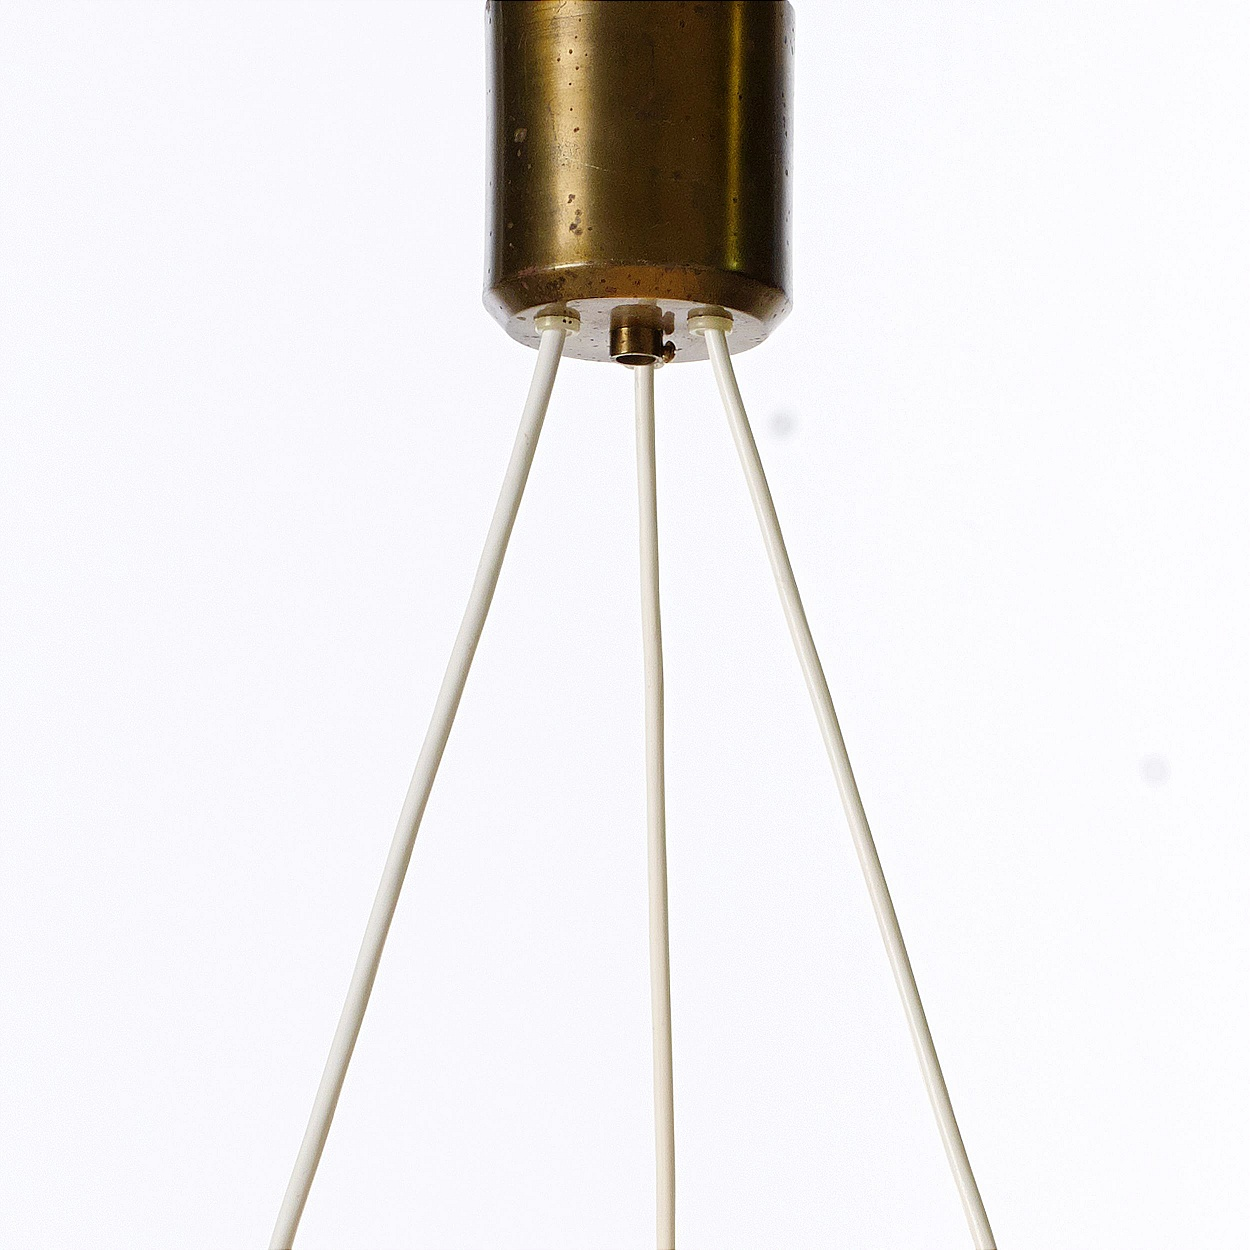 Bertil Brisborg, a chandelier for NK 1940's